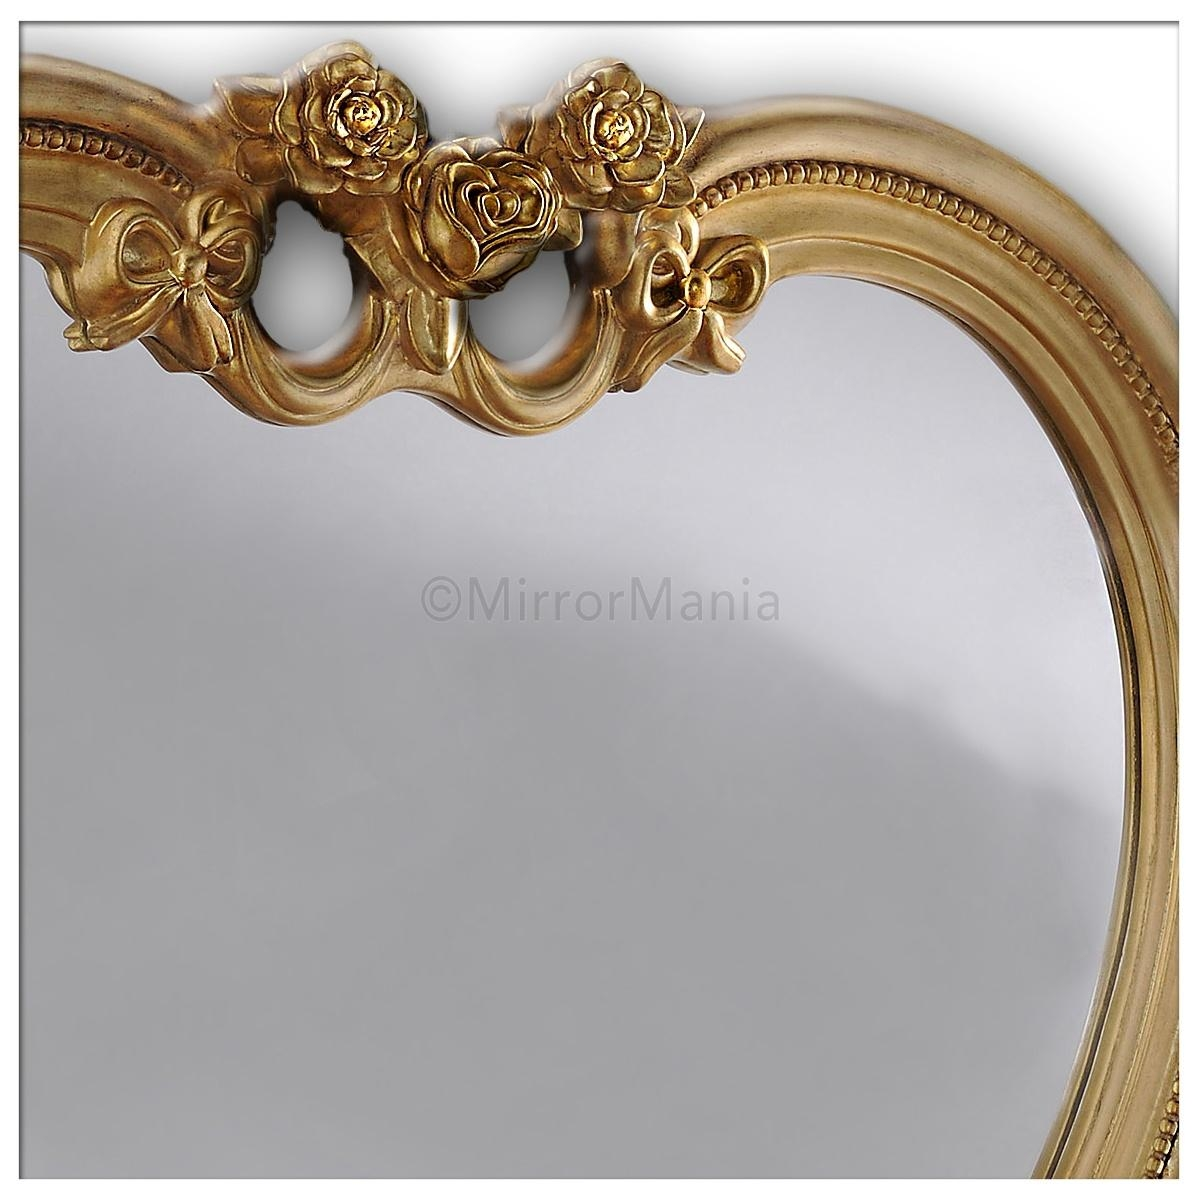 Heart Shaped Wall Mirror Gold Regarding Heart Shaped Mirrors For Walls (Image 12 of 20)